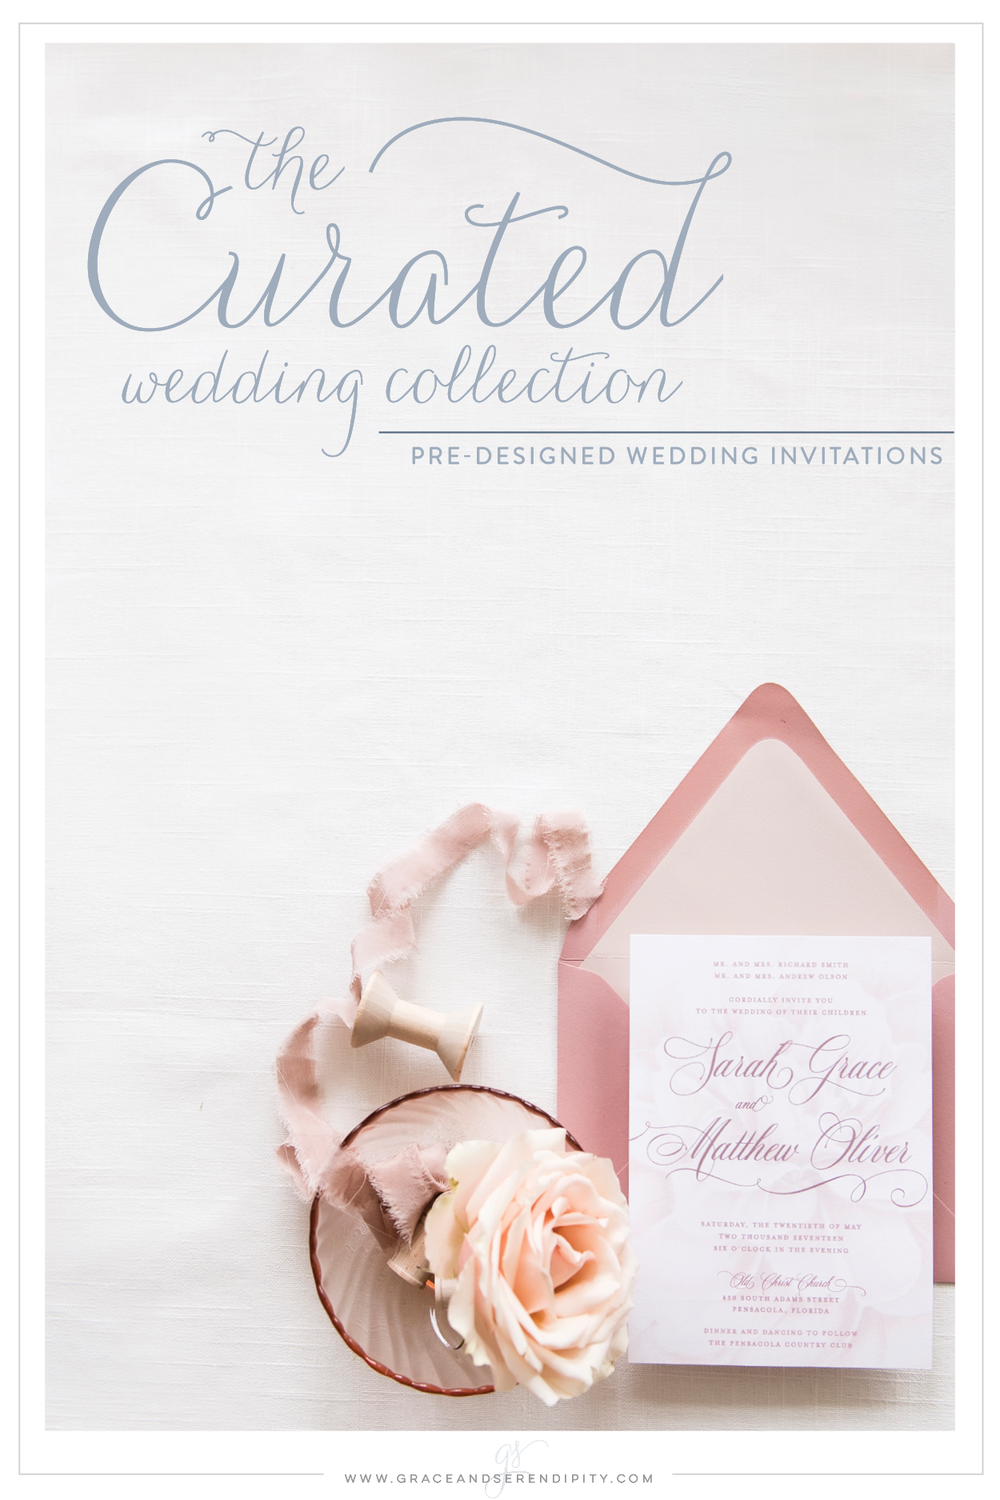 Curated Collection - Wedding Invitation Design by Pensacola Invitation Designer Grace and Serendipity